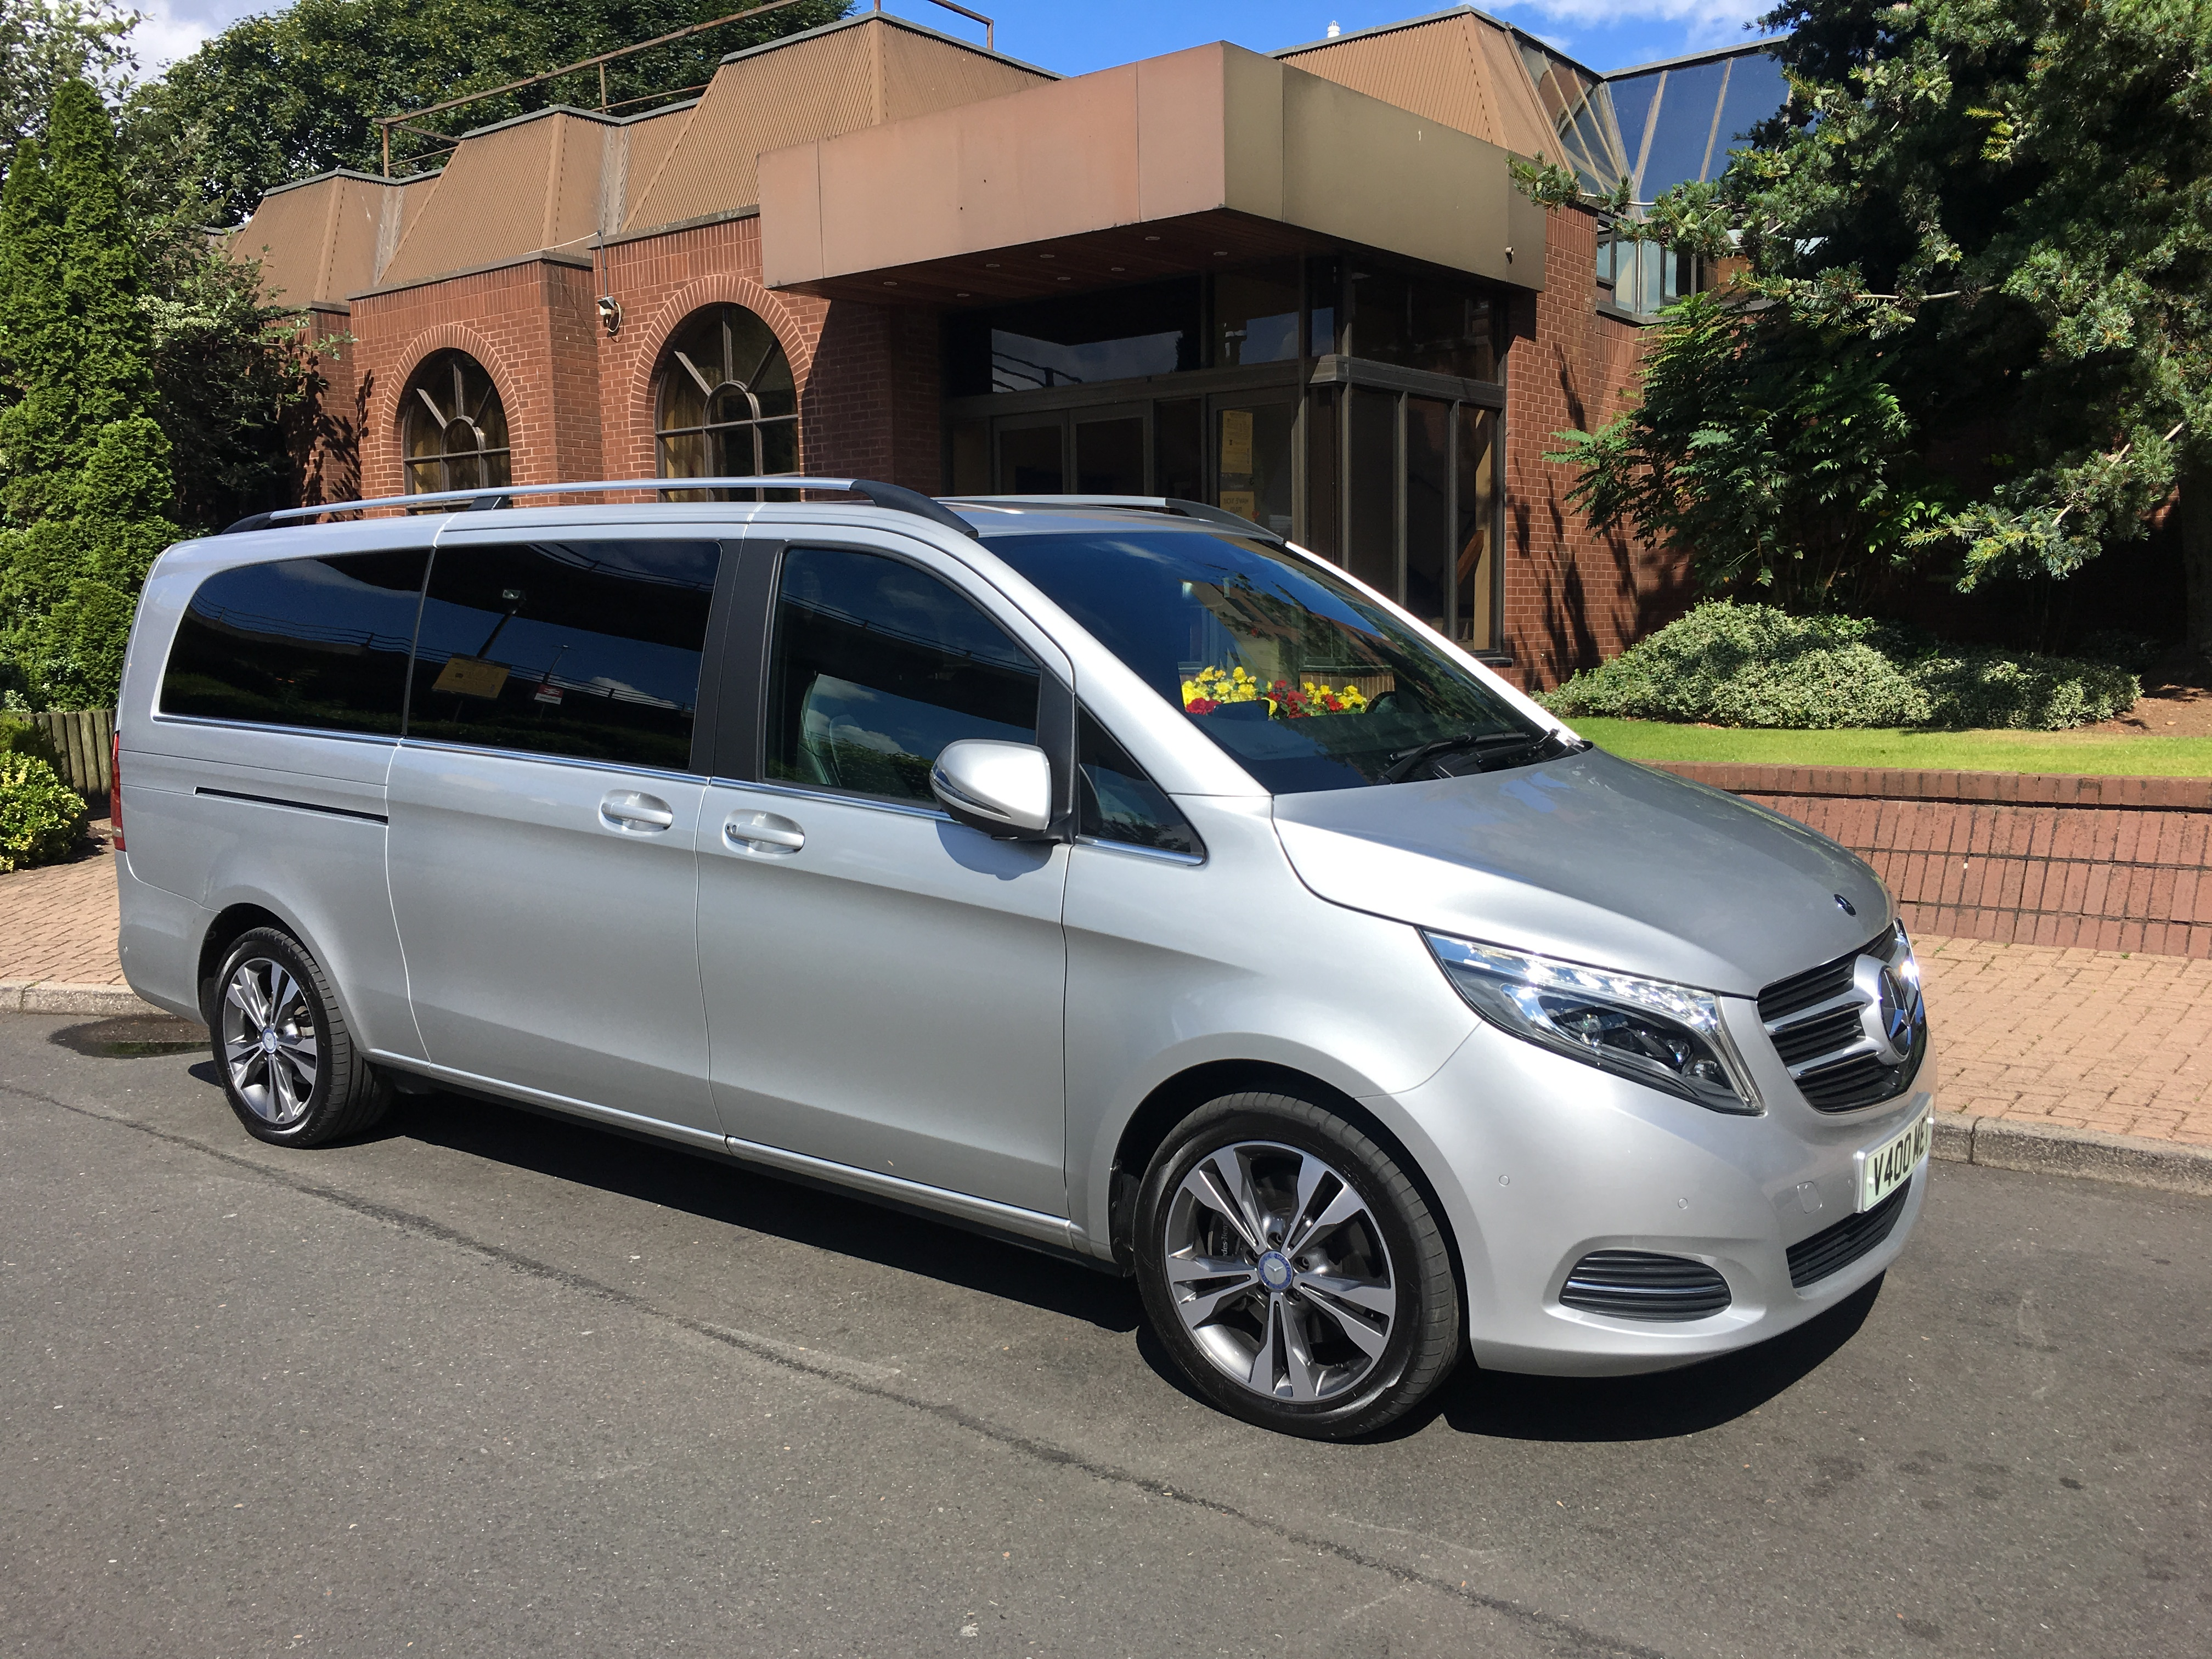 Mercedes Benz MPV's